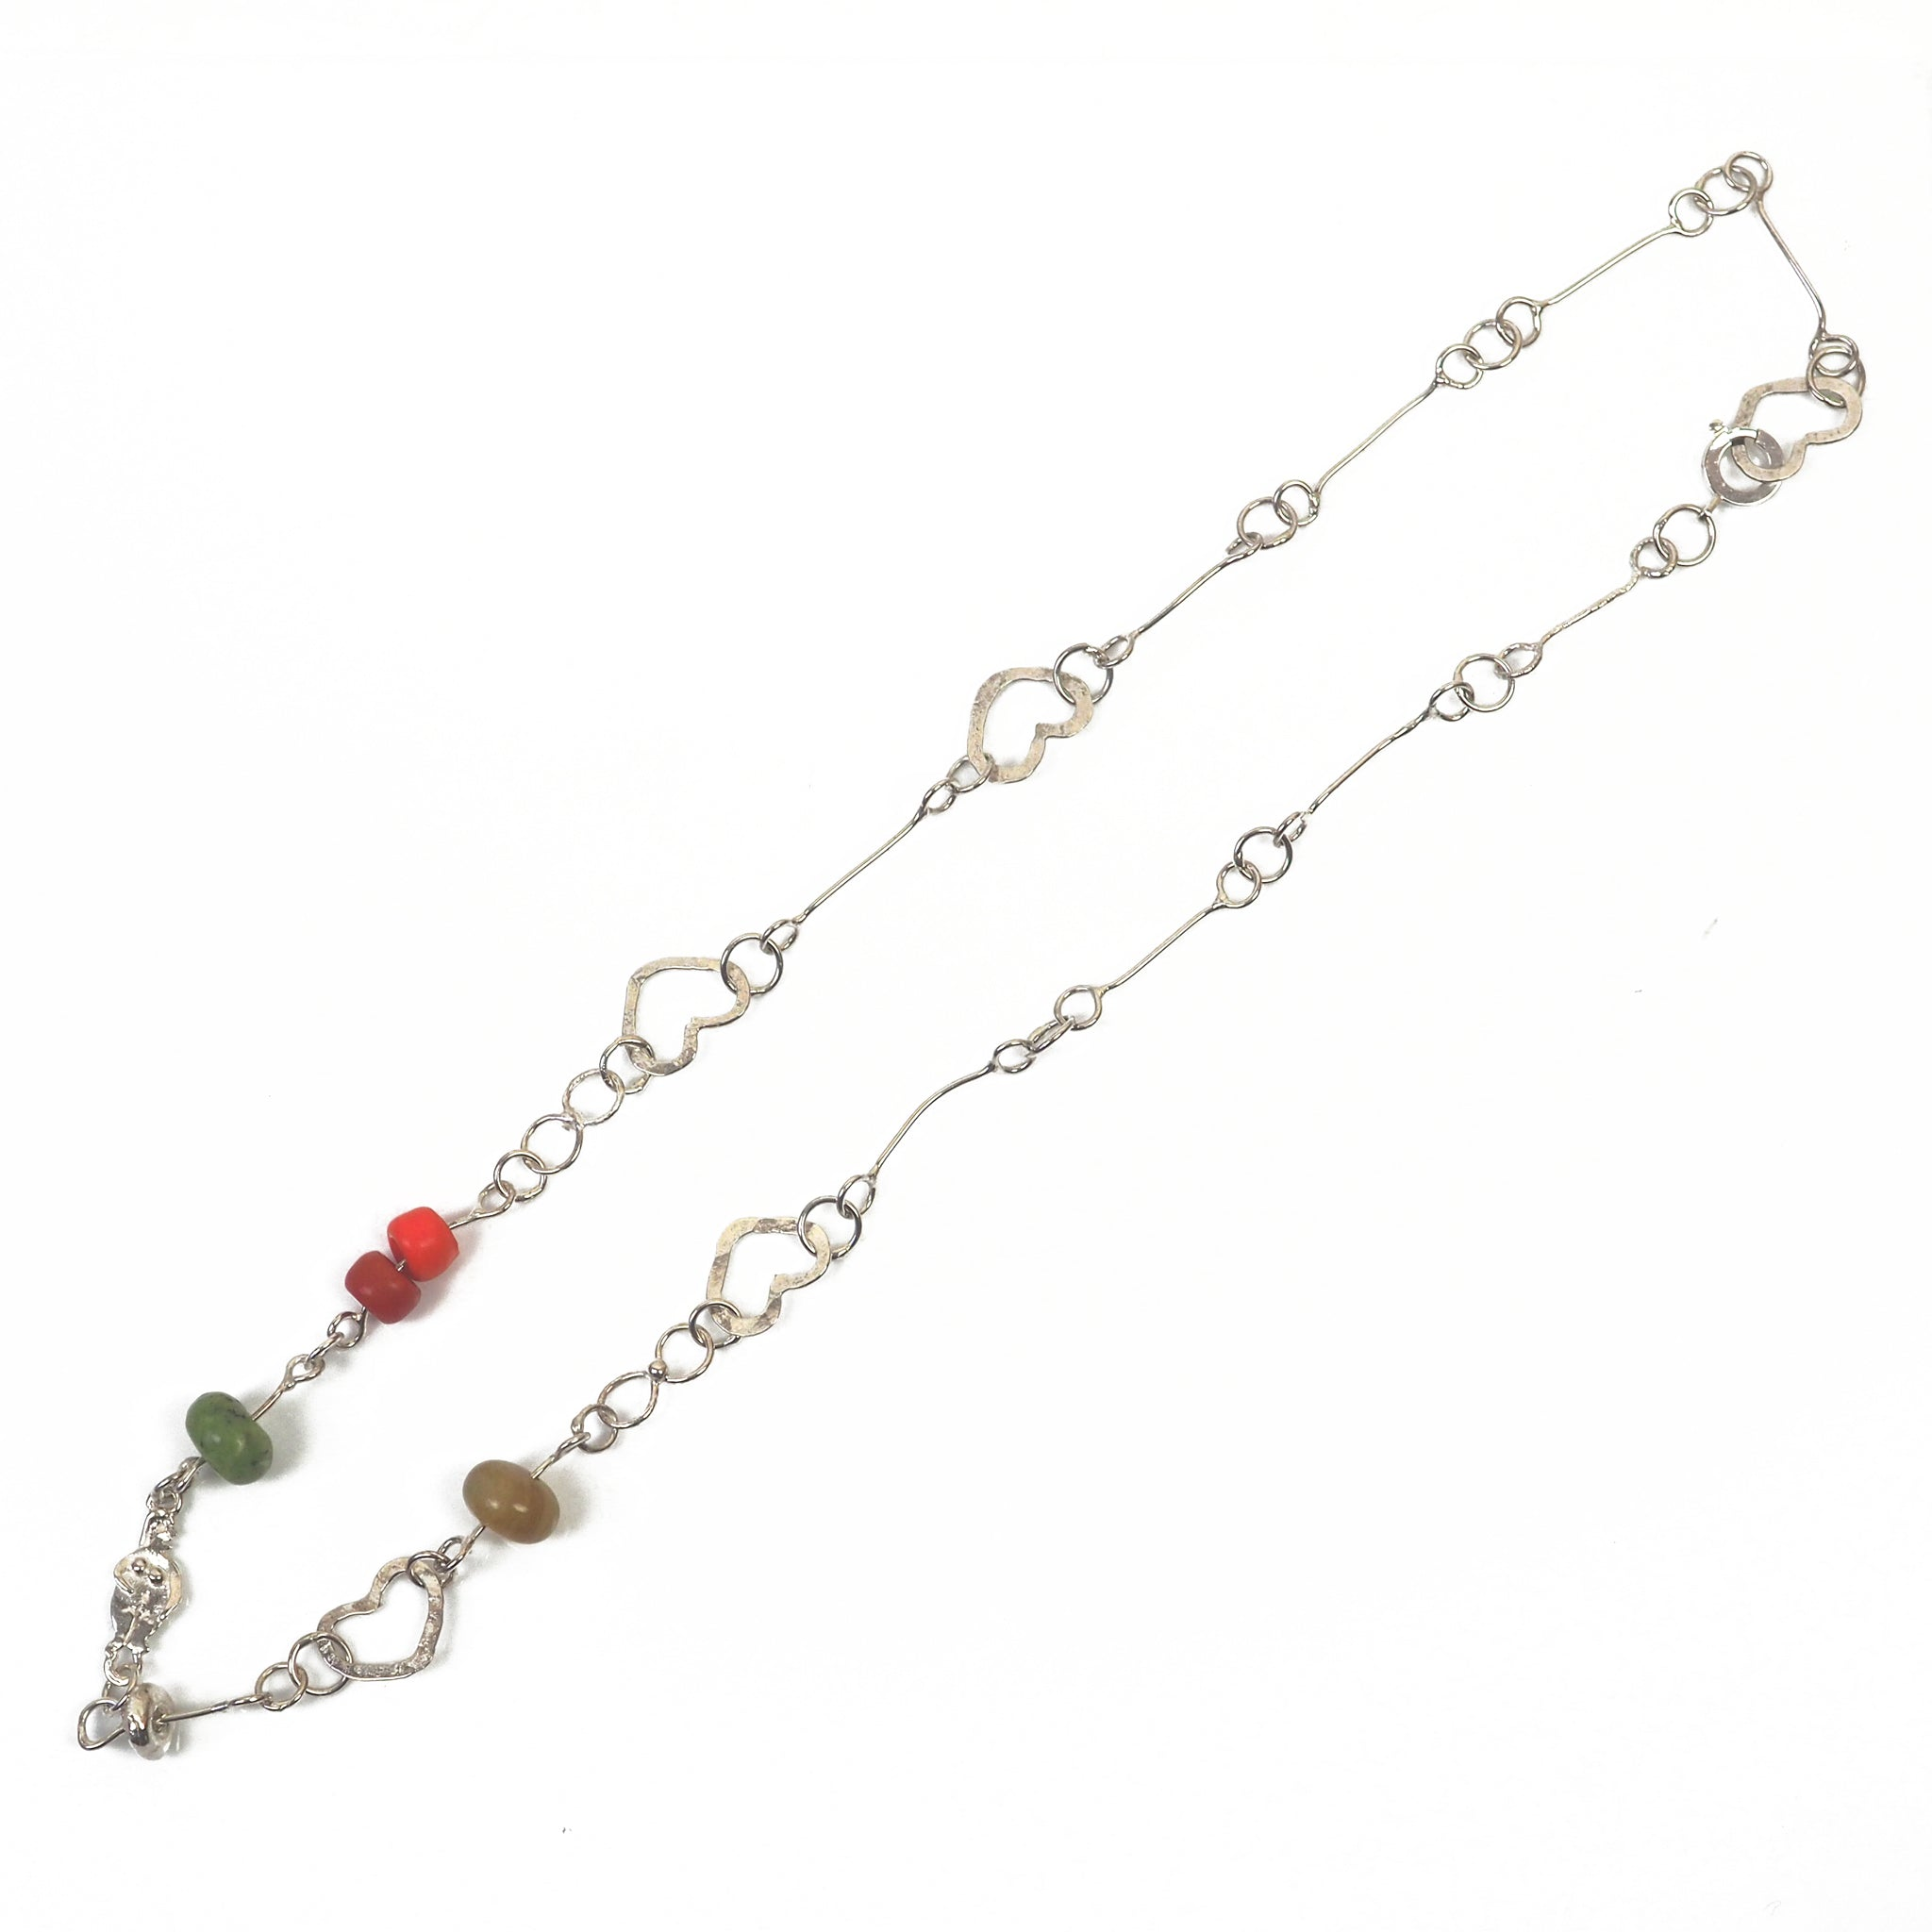 Pine, Jemima - Silver Necklace